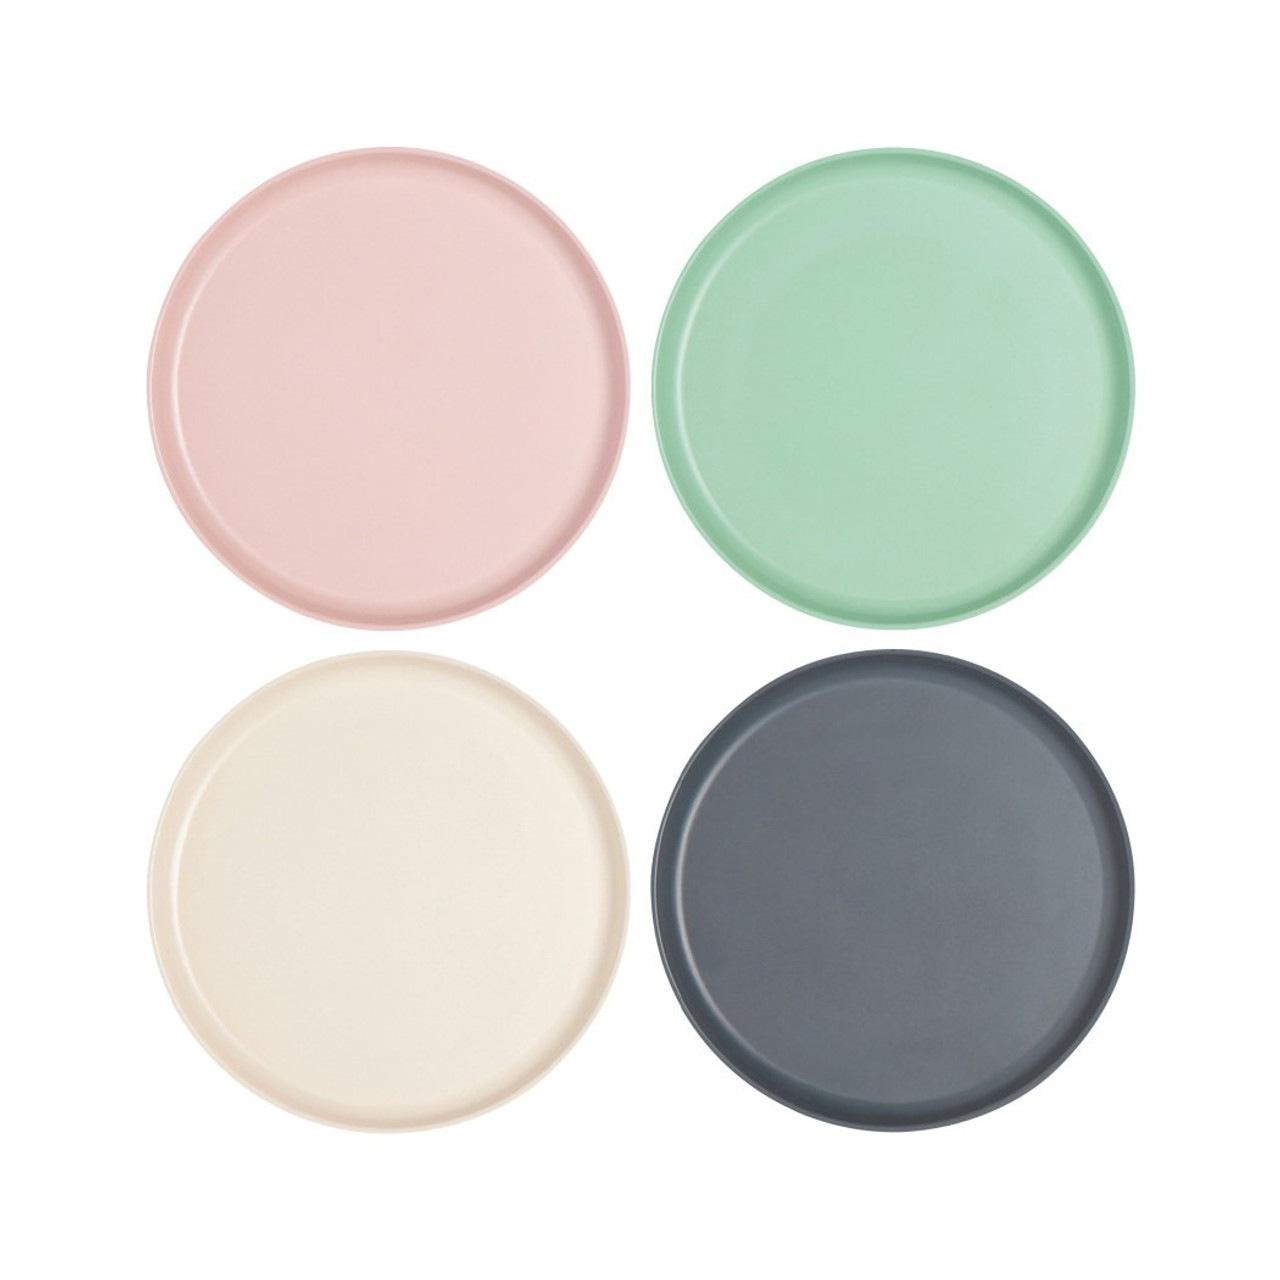 ECOLOGIE SIDE PLATE SET OF 4